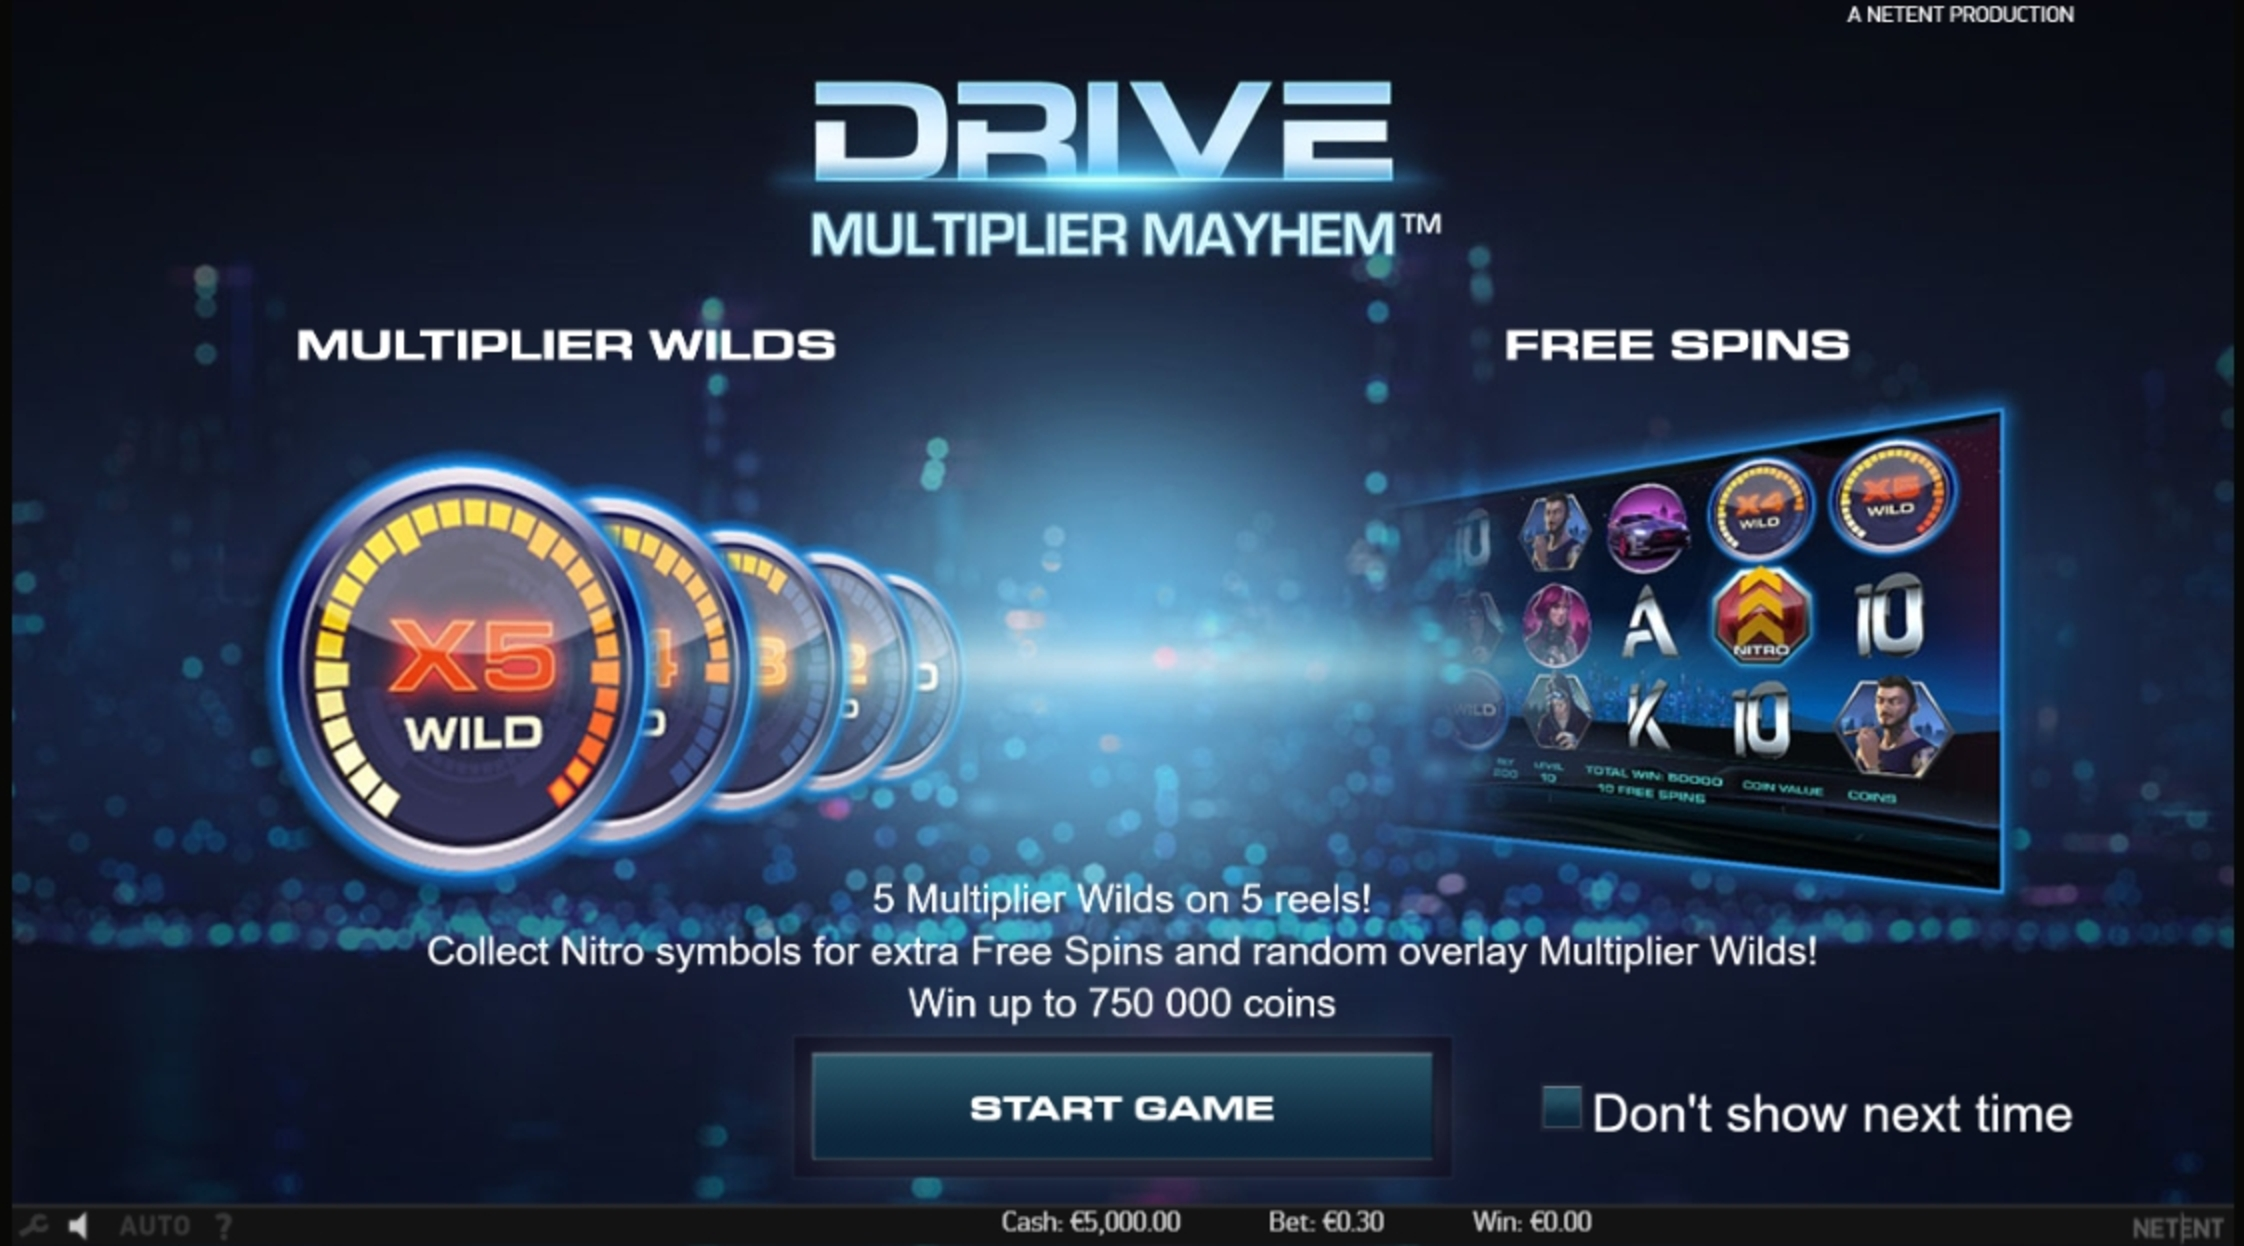 Play Drive Multiplier Mayhem Free Casino Slot Game by NetEnt